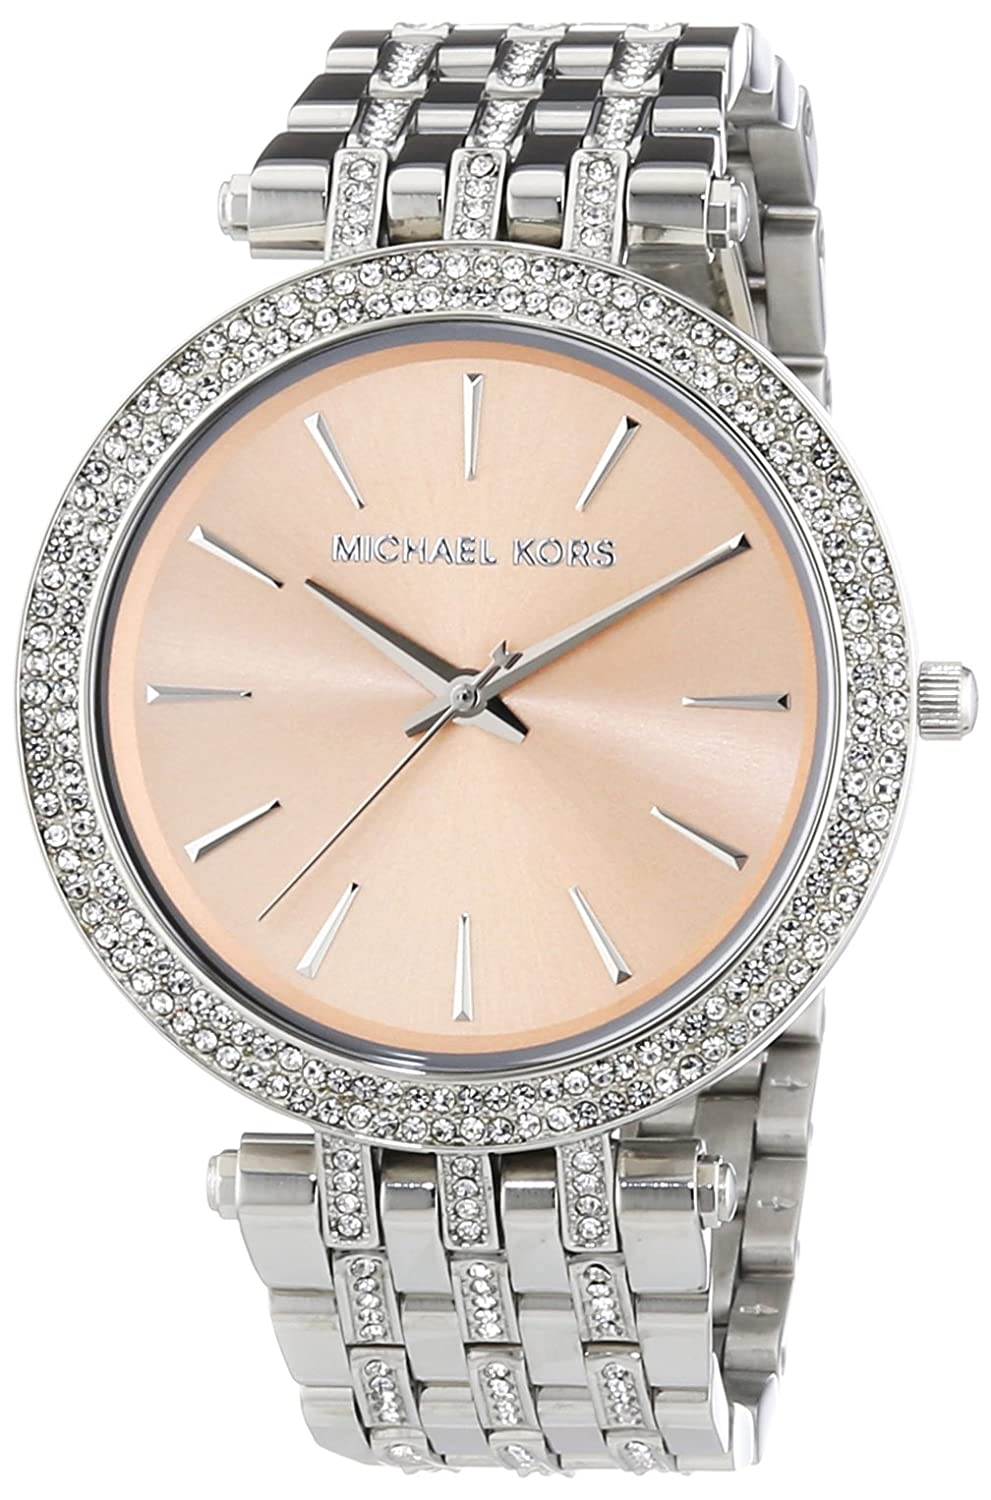 55e3e5e3a89c Michael Kors Women s Darci MK3218 Silver Glitter Stainless-Steel Quartz  Watch  Amazon.ca  Watches